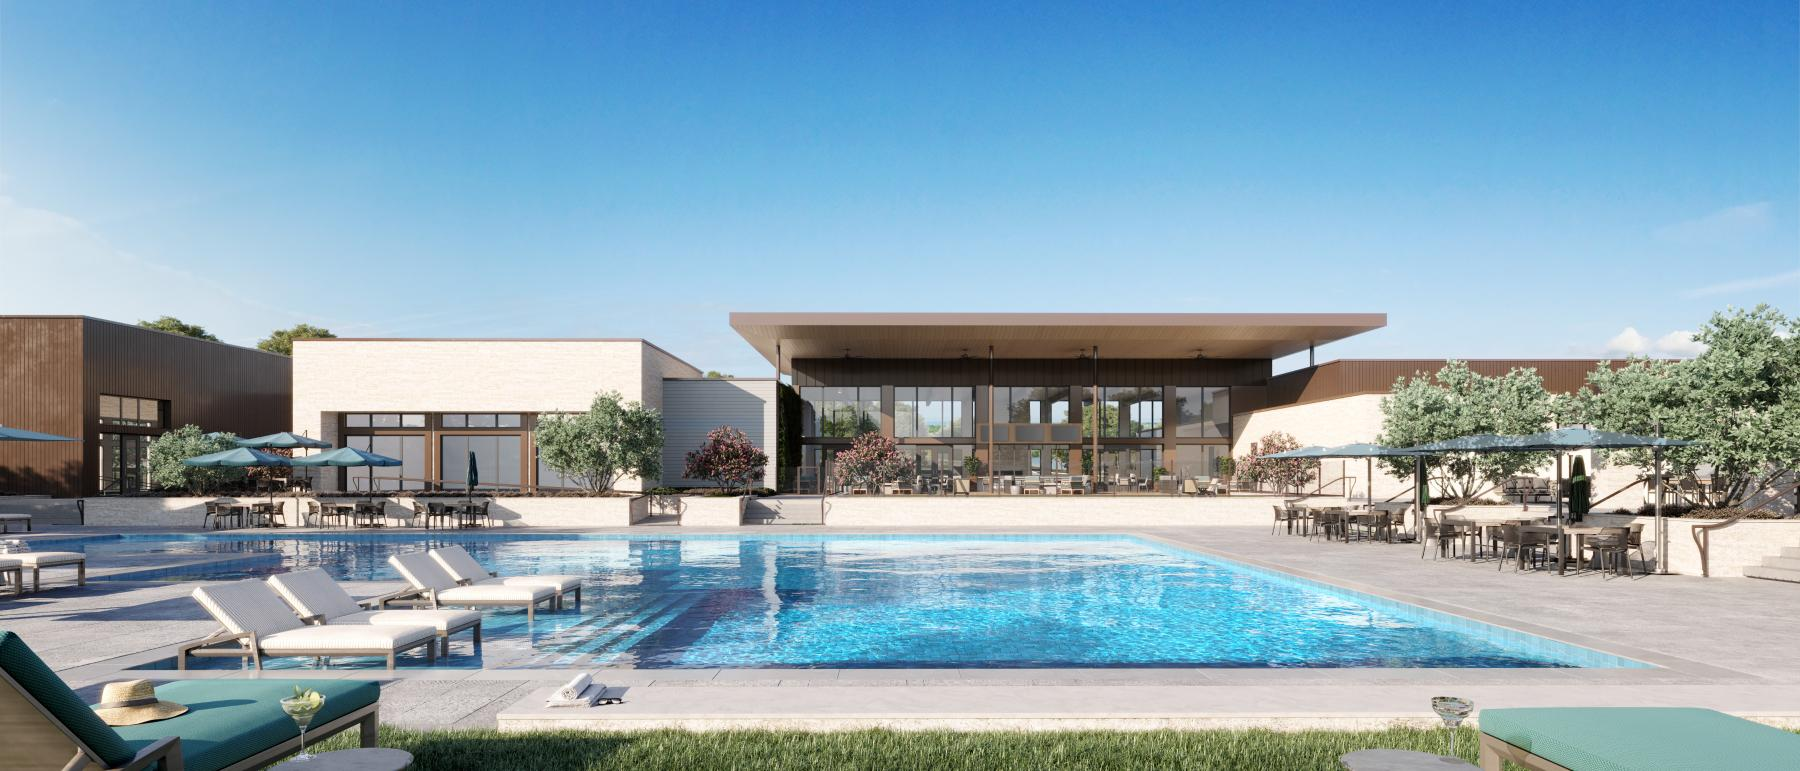 Take a few laps at the clubhouse pool